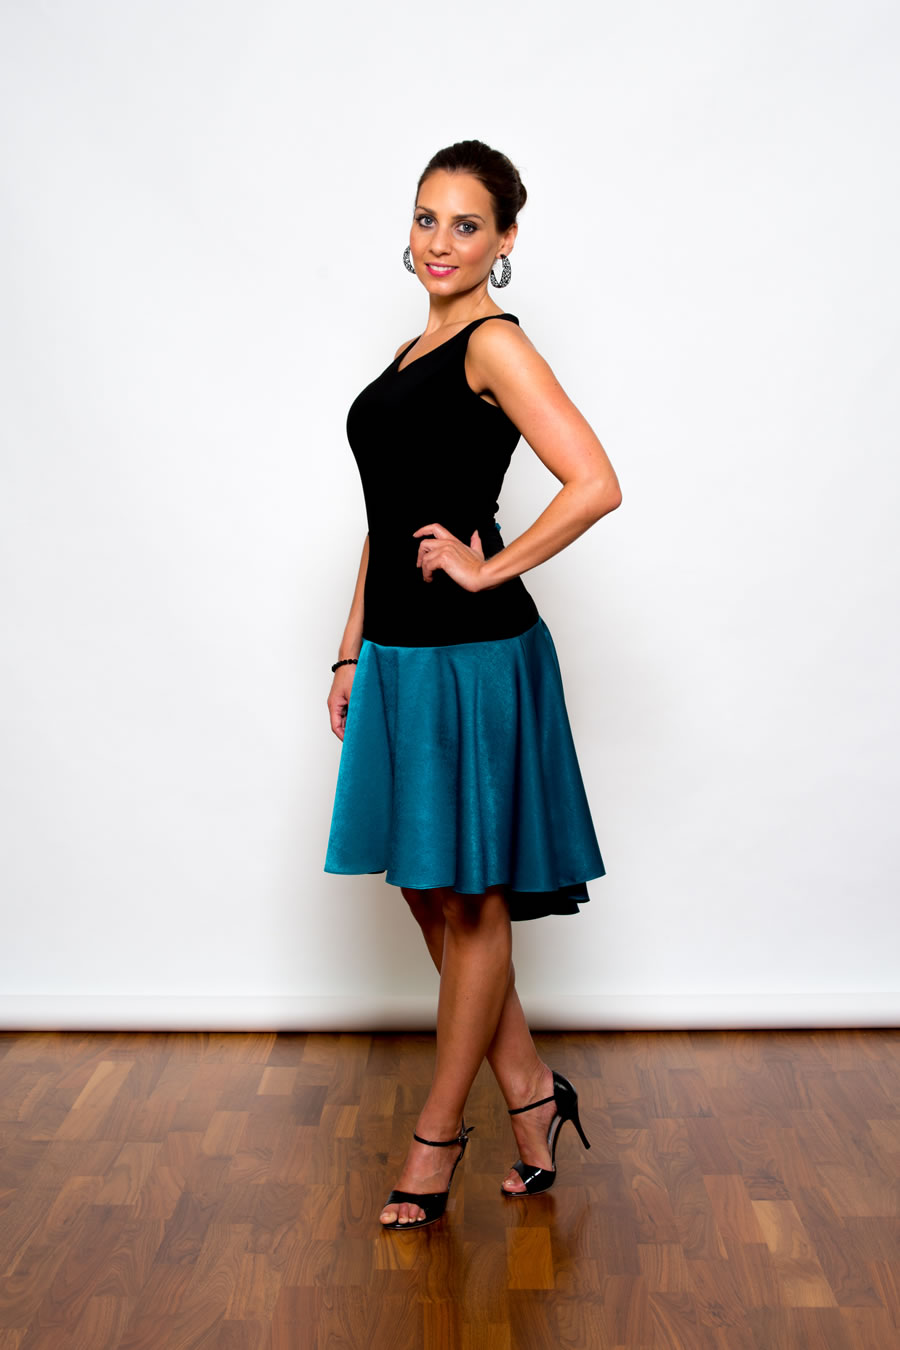 Tango Clothing Dresses Amp Fashion Made In The Uk Glamour